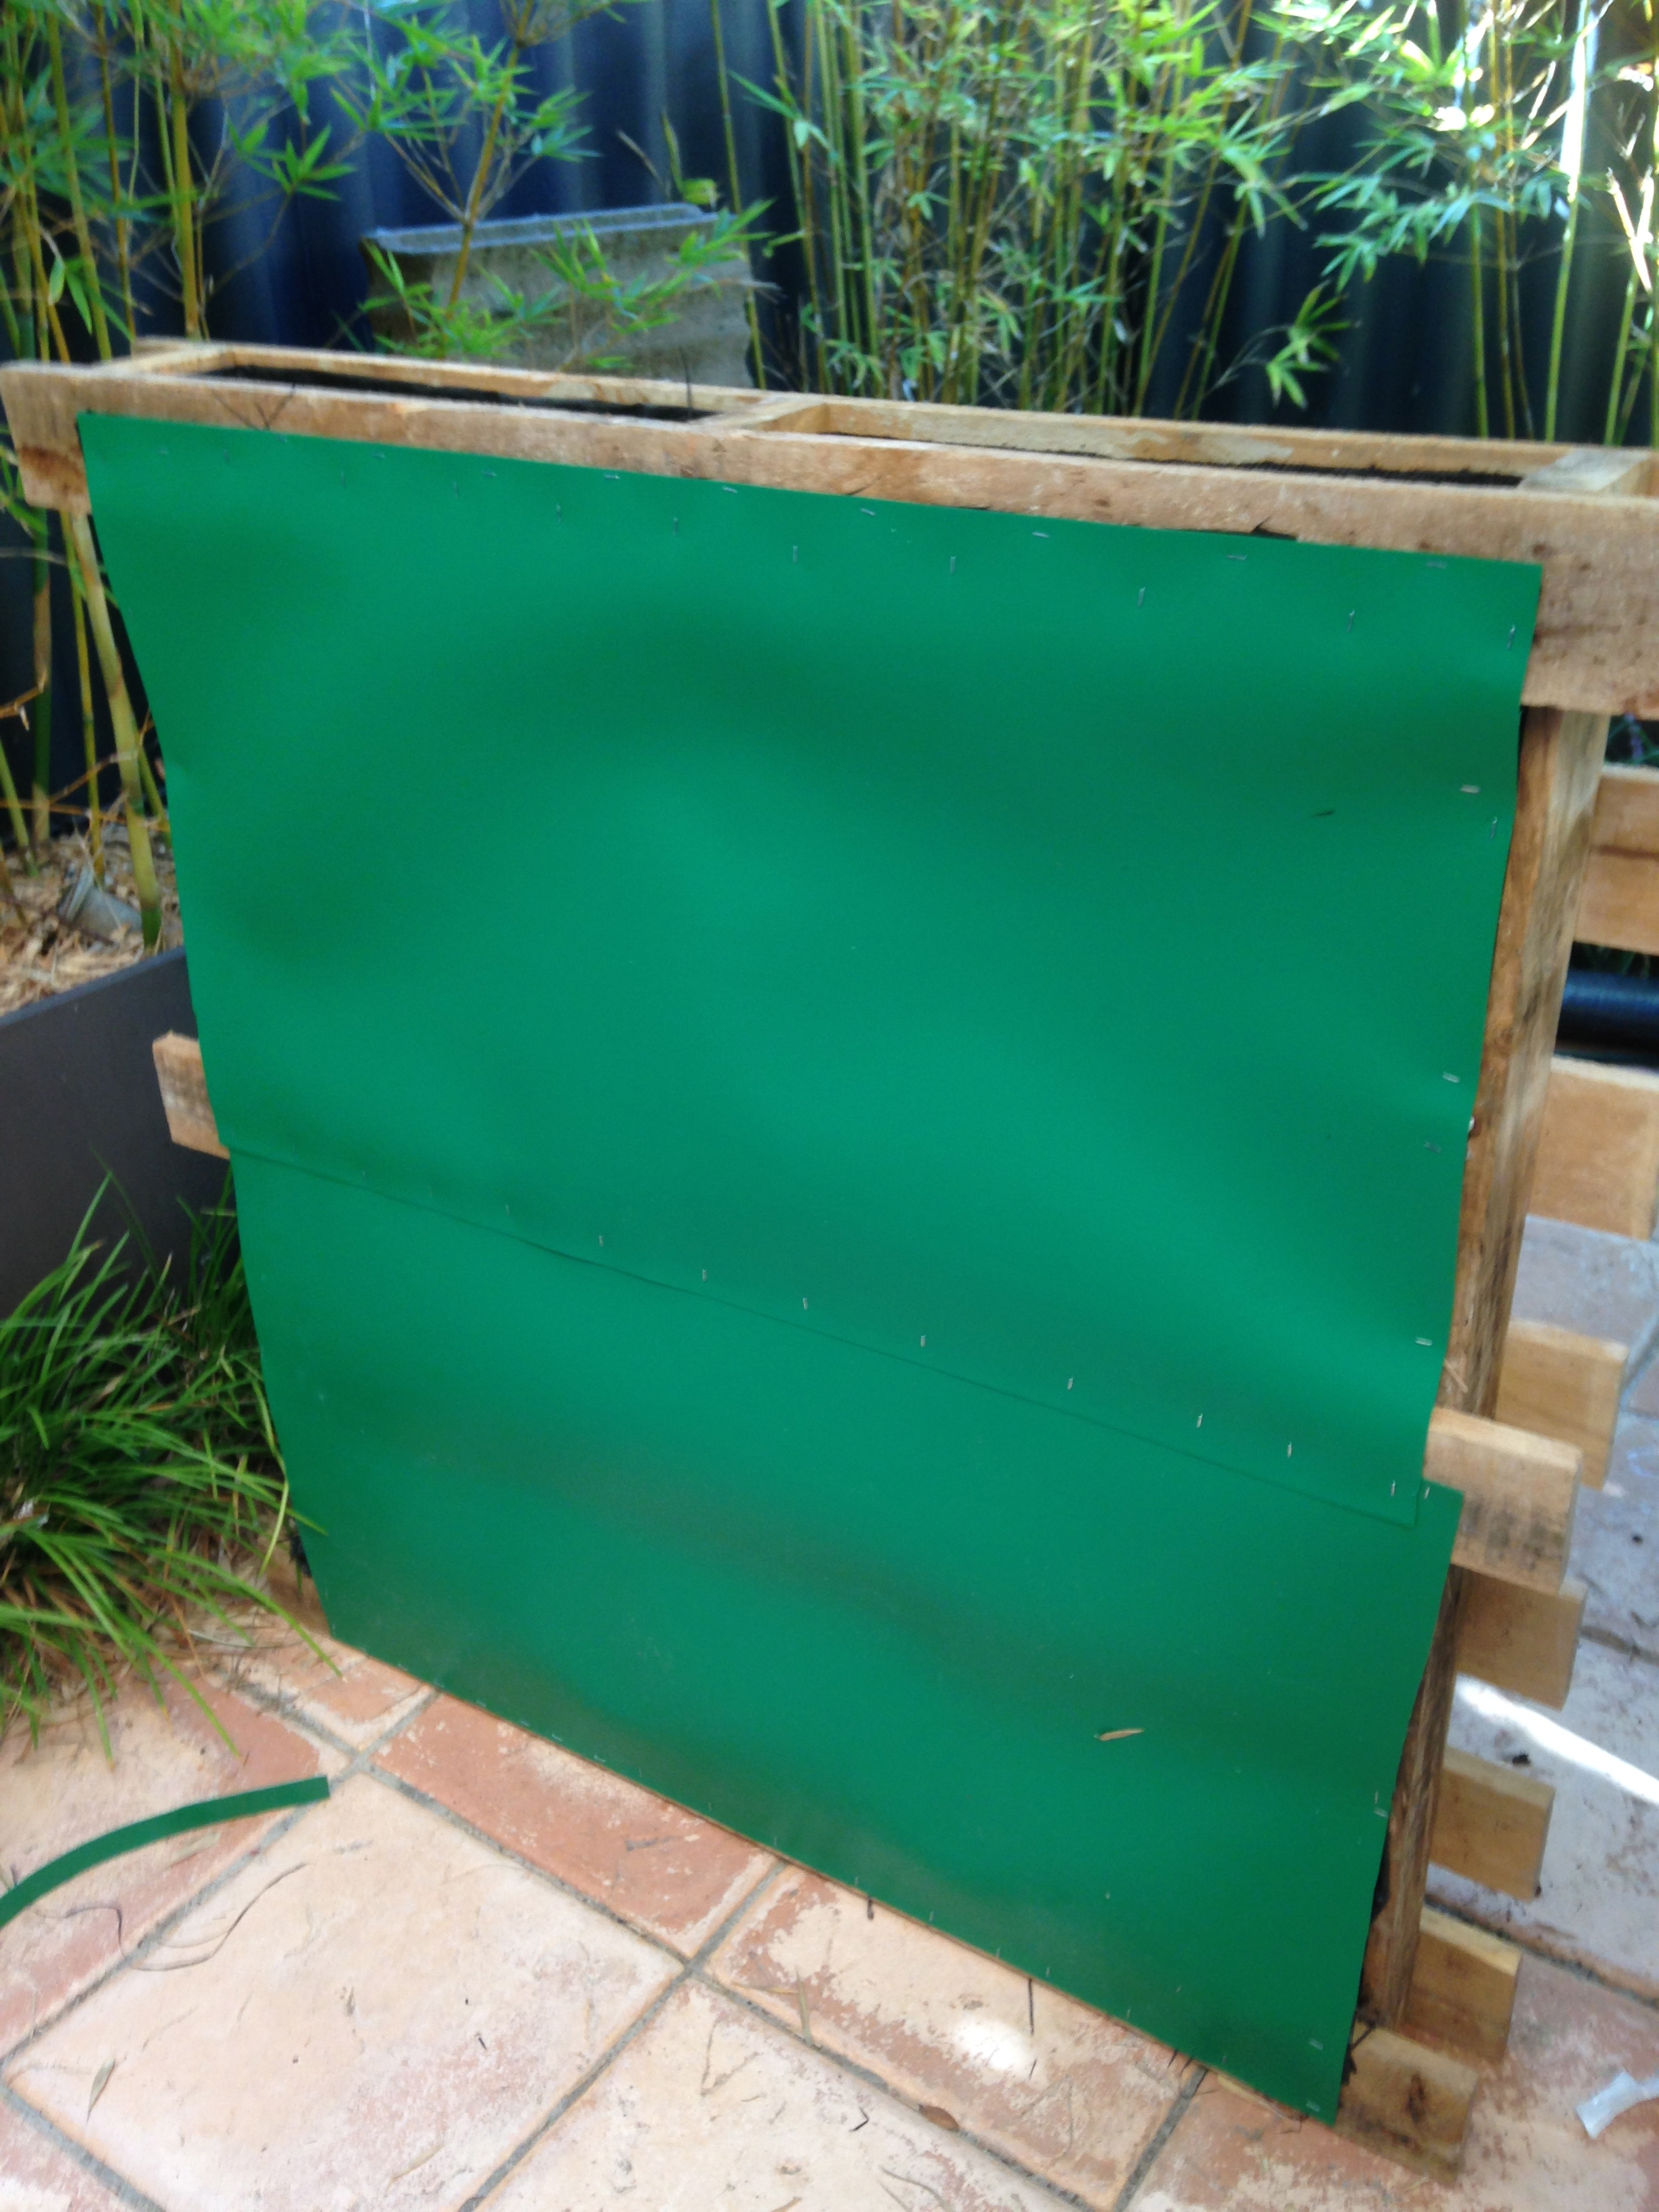 My waterproof backing is some root barrier that I had in the garage.  Blueboard would work just as well, but you will need to nail it on.